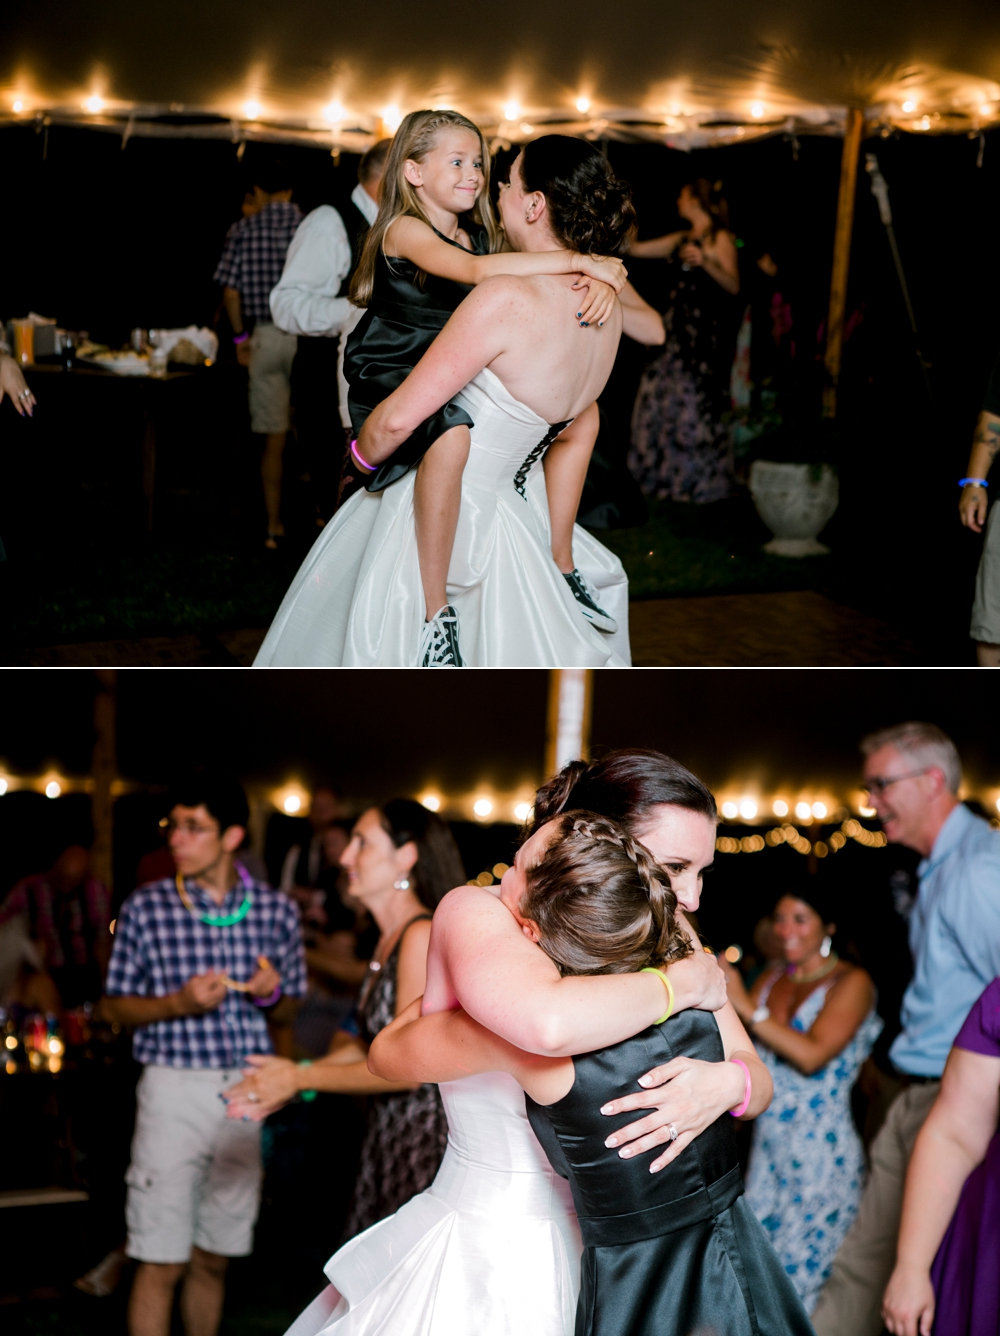 SomerbyJonesPhotography__VermontWedding_VTWedding_BackyardVermontWedding_0049.jpg